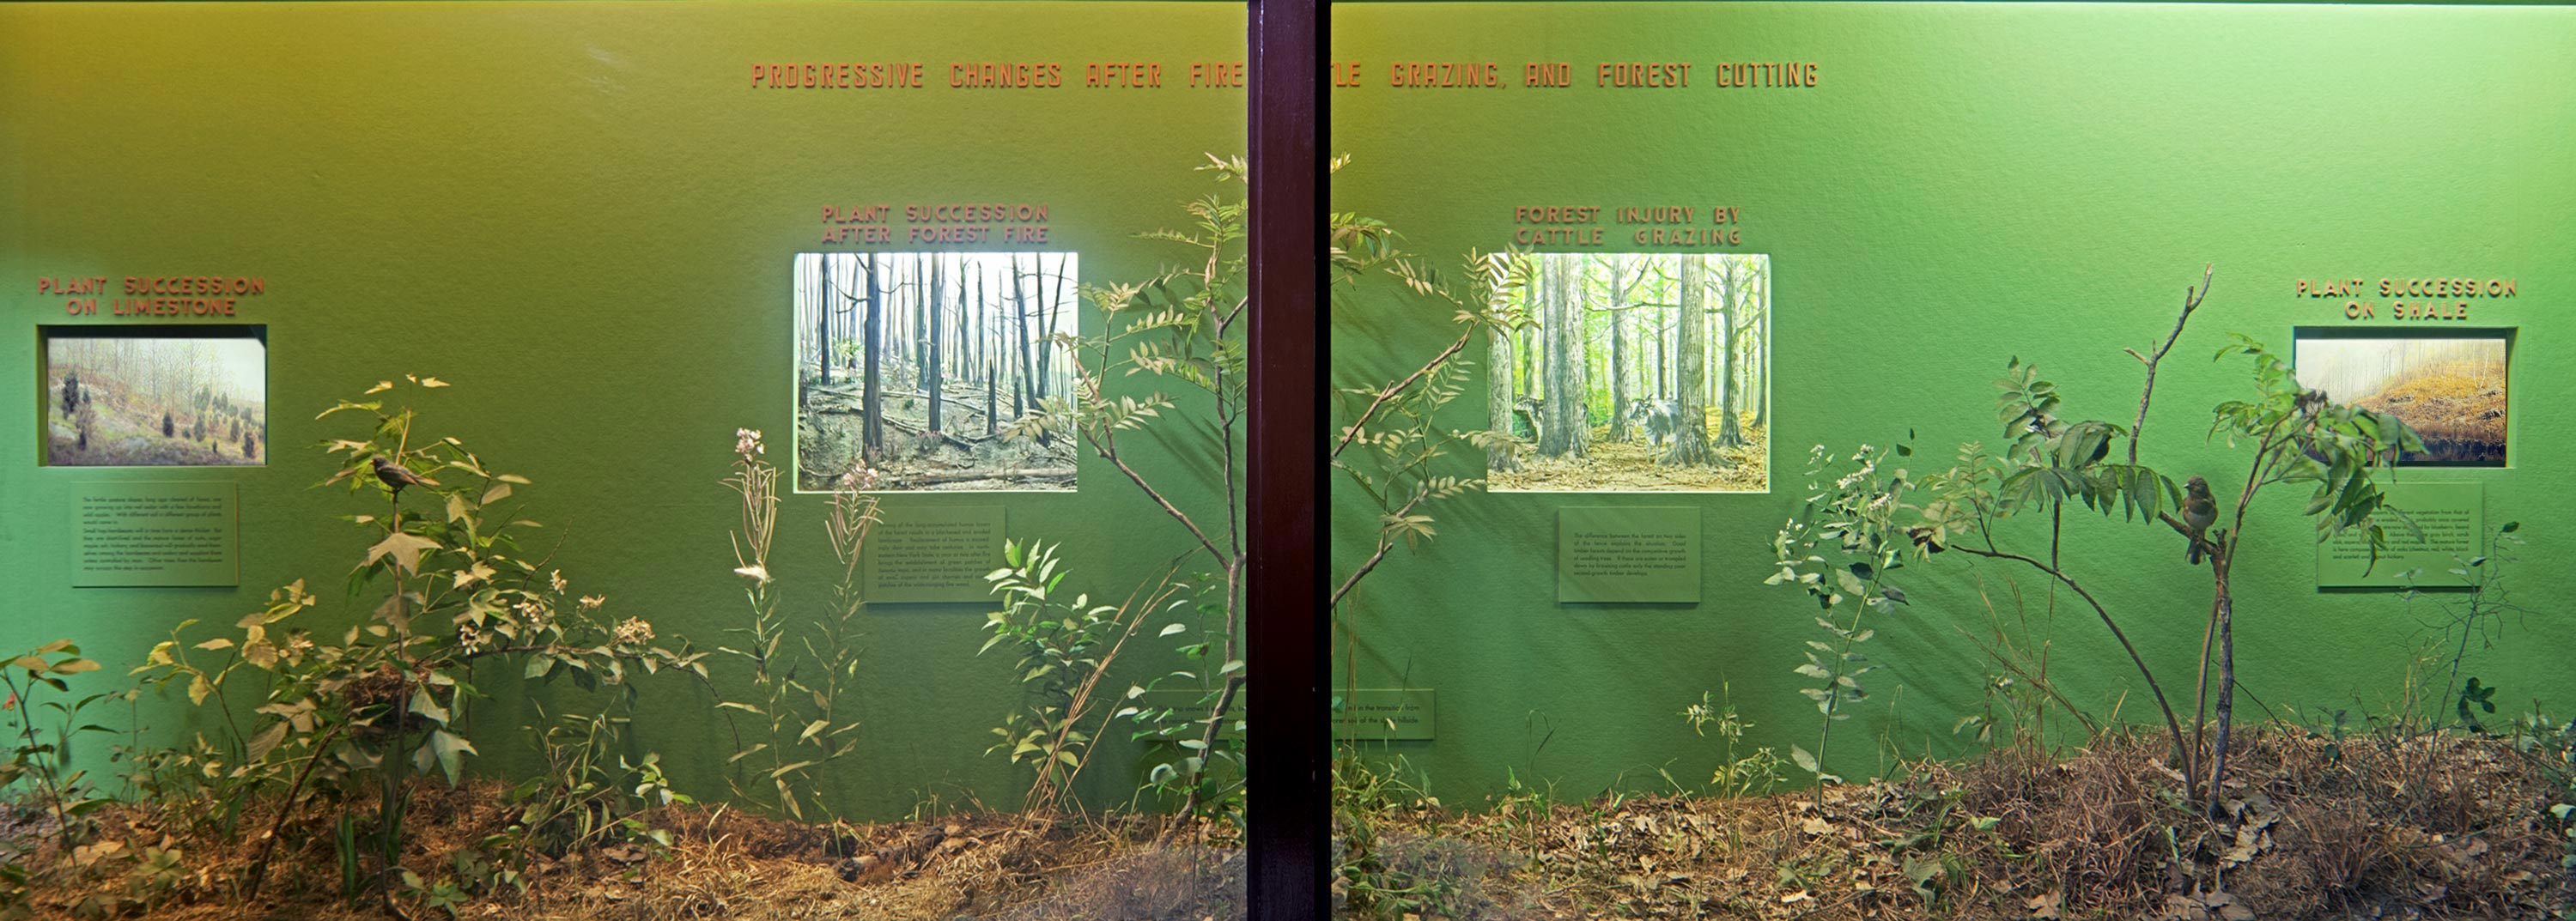 Museum case showing forest flora and dioramas illustrating different stages of the forest.